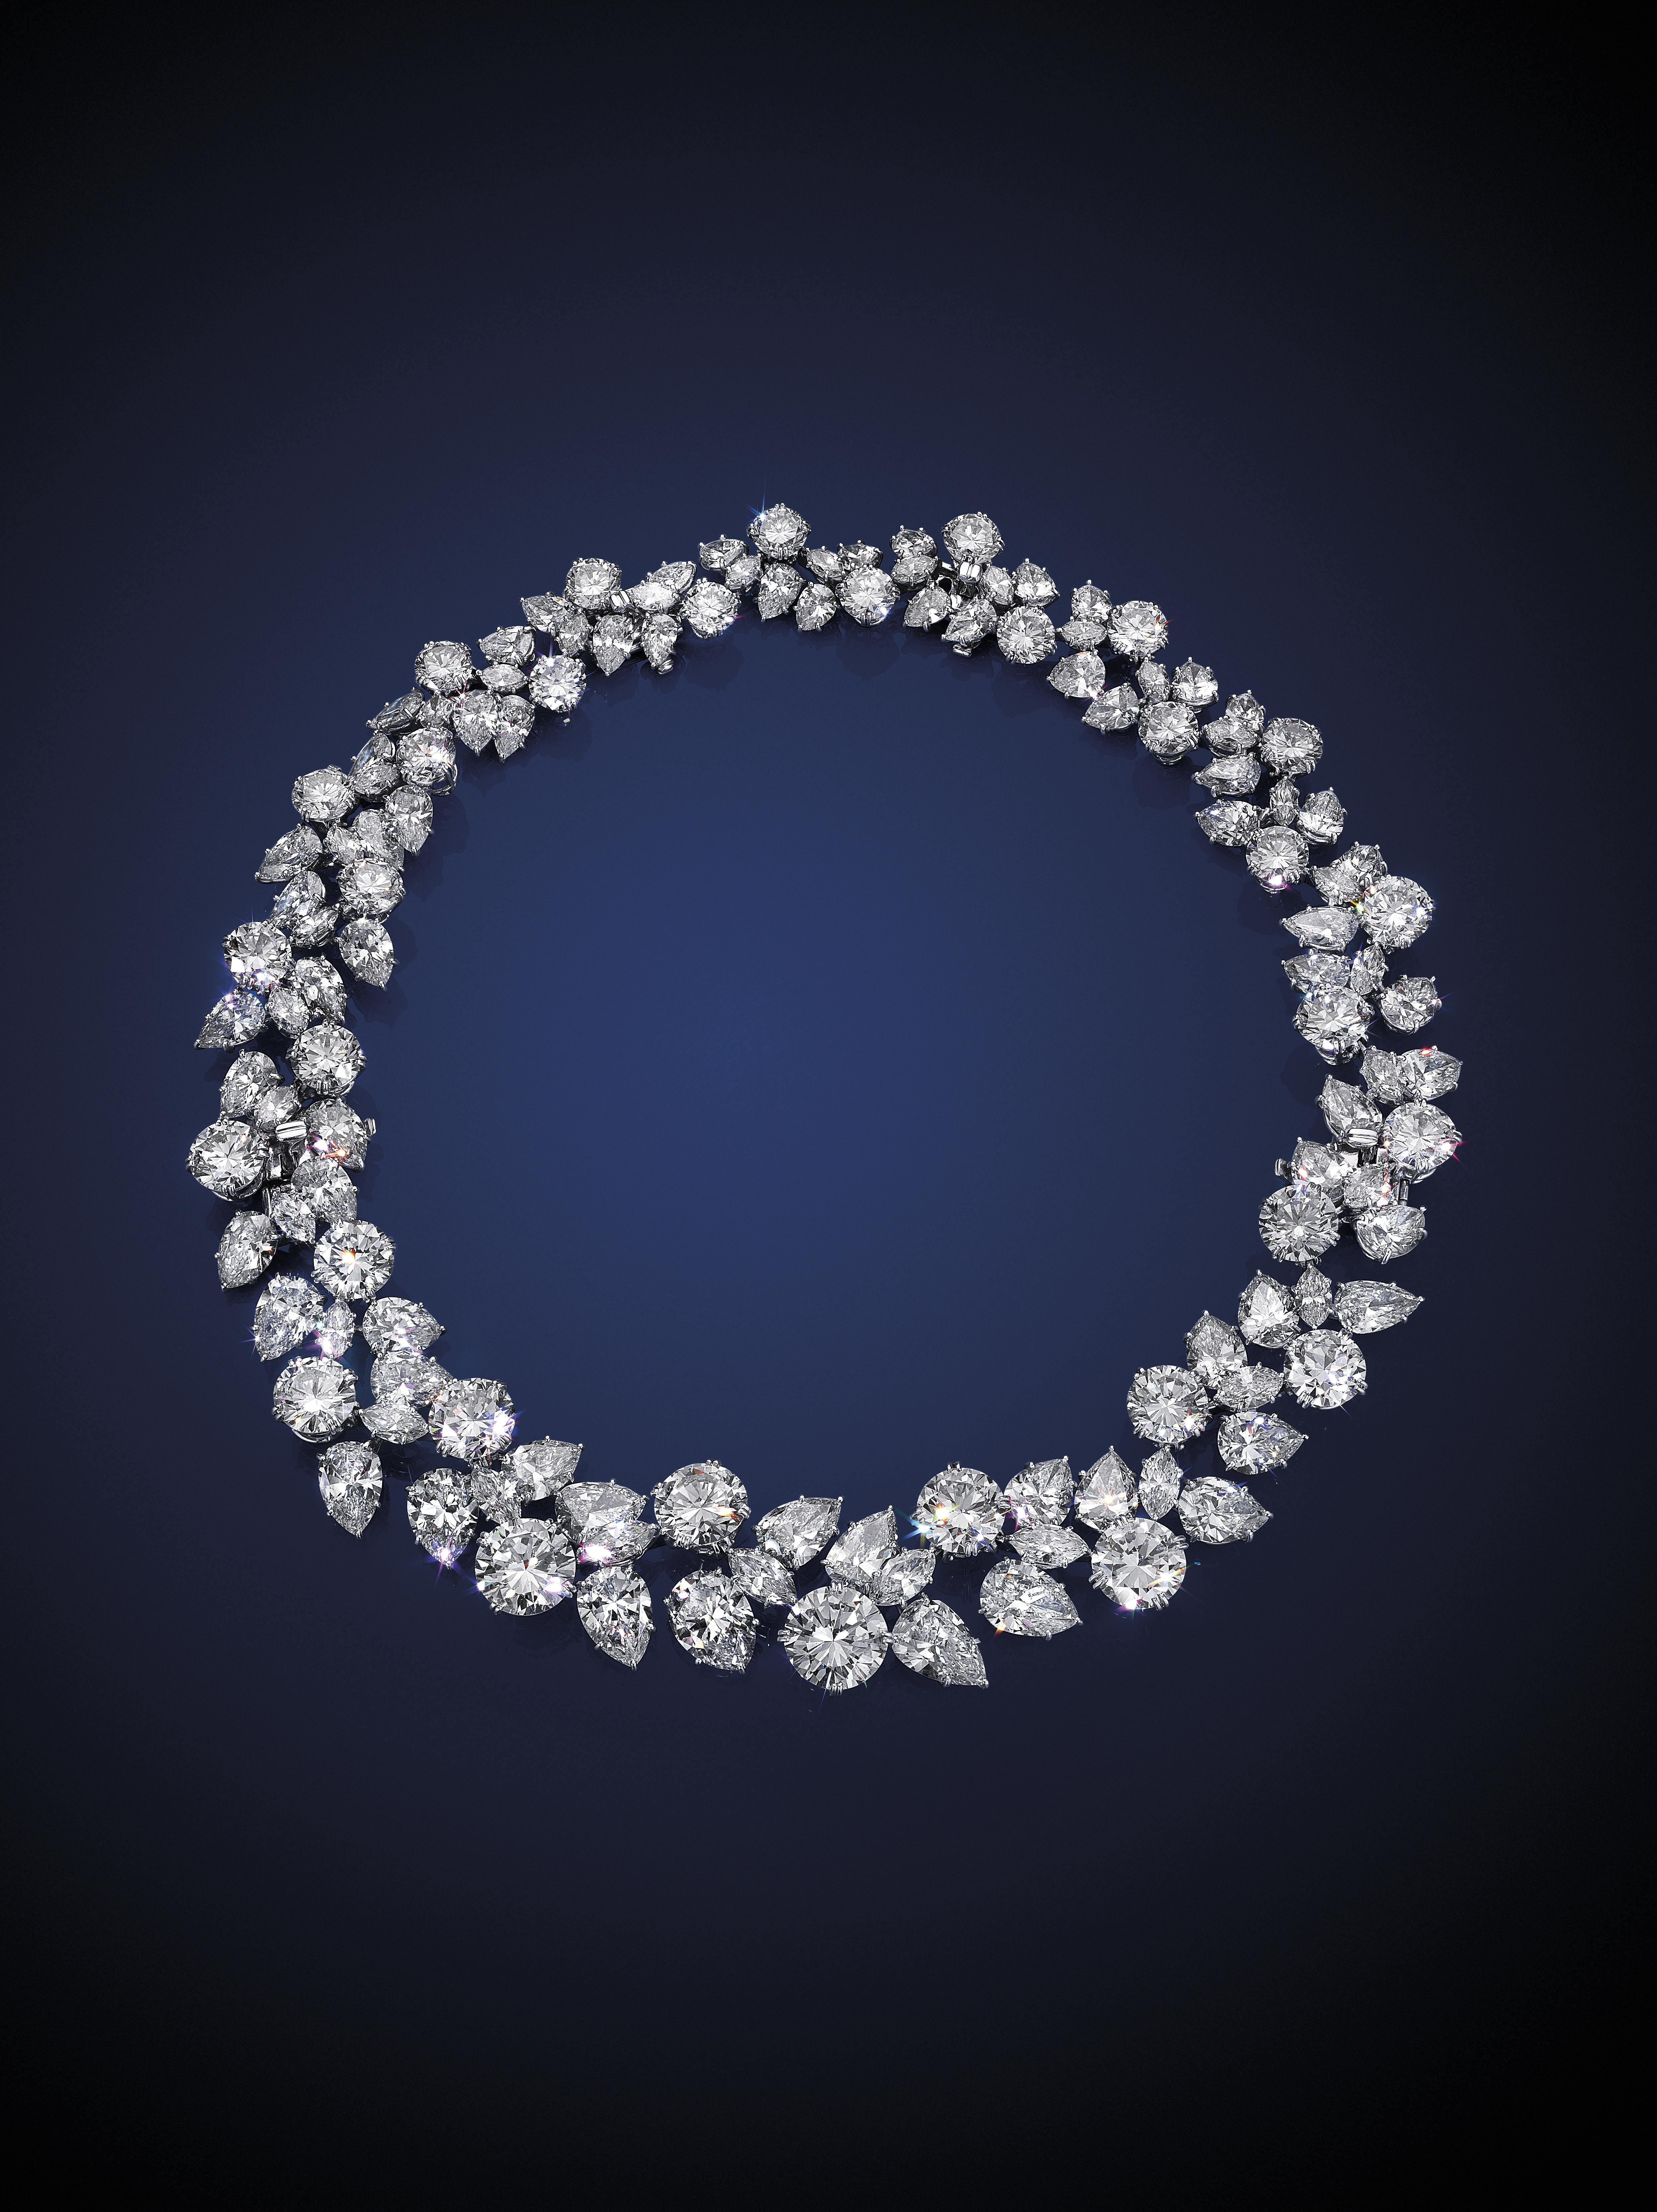 5 Minutes With… A Harry Winston Wreath Necklace | Christie's Pertaining To Current Diamond Wreath Necklaces (View 2 of 25)